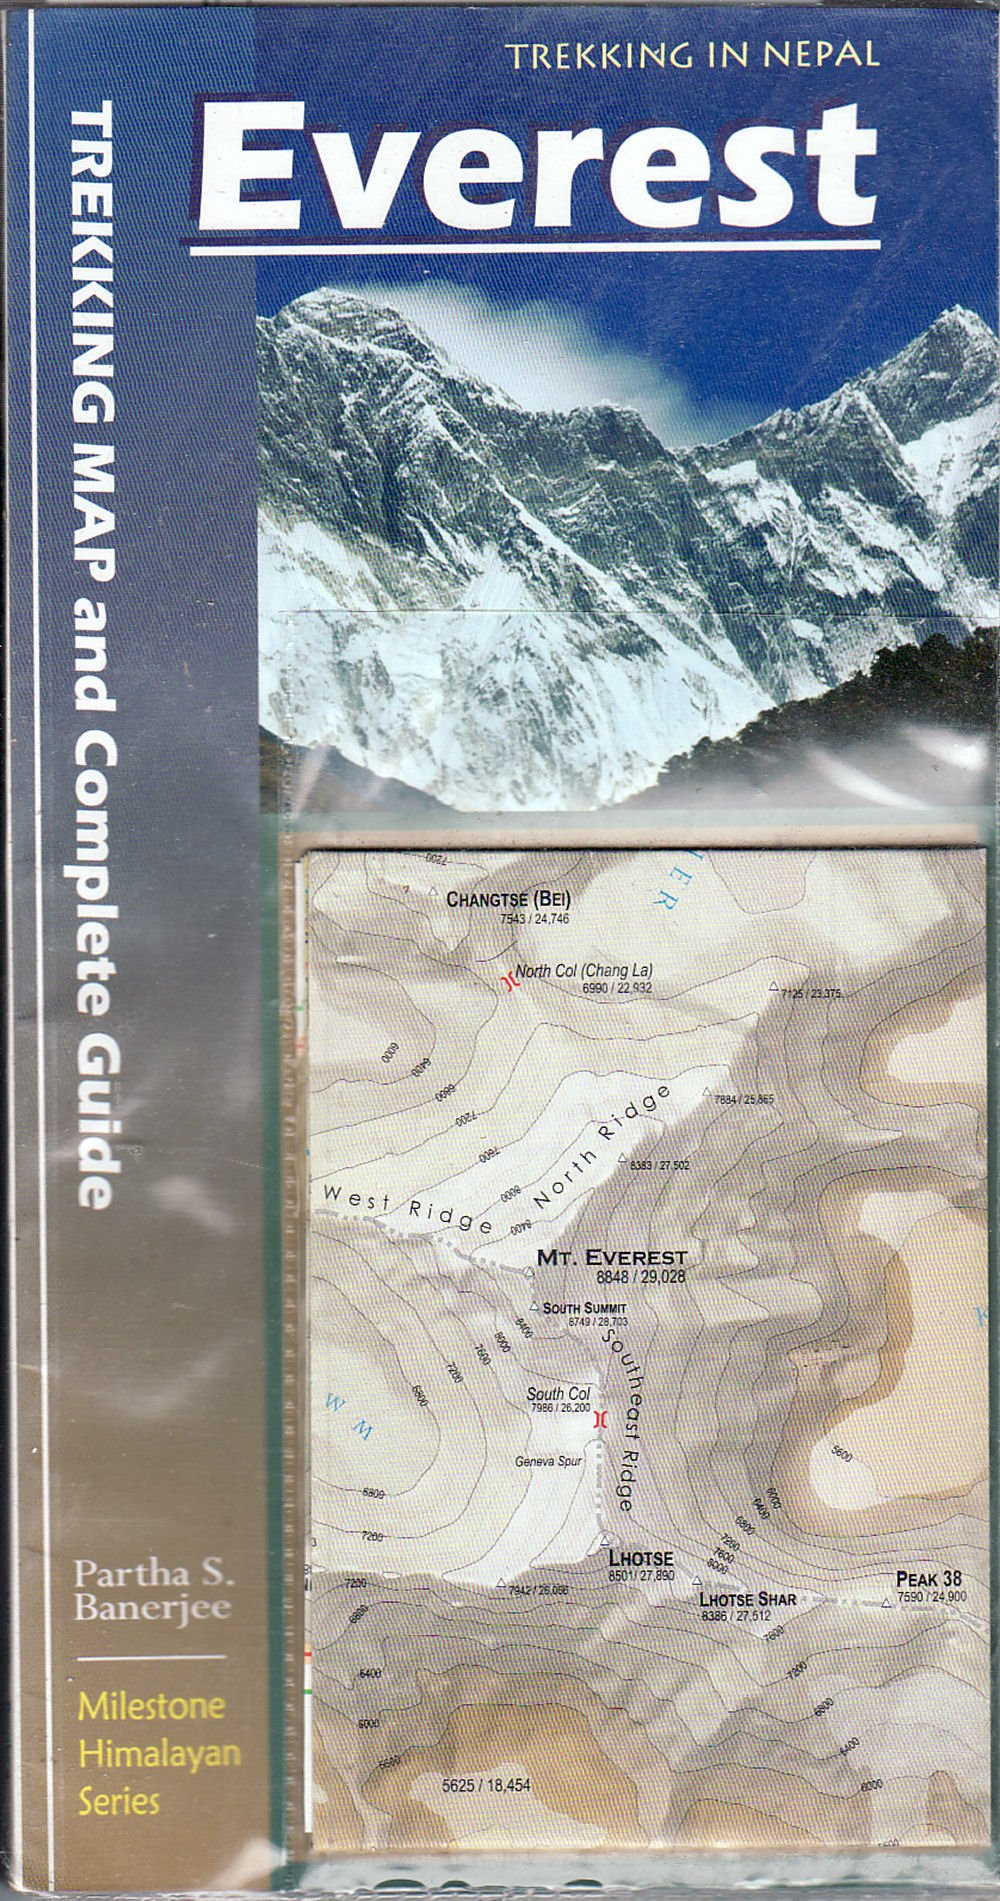 Everest: Trekking Map and Complete Guide (Milestone Himalayan Series) 4th Edition 2017 --- March 2017